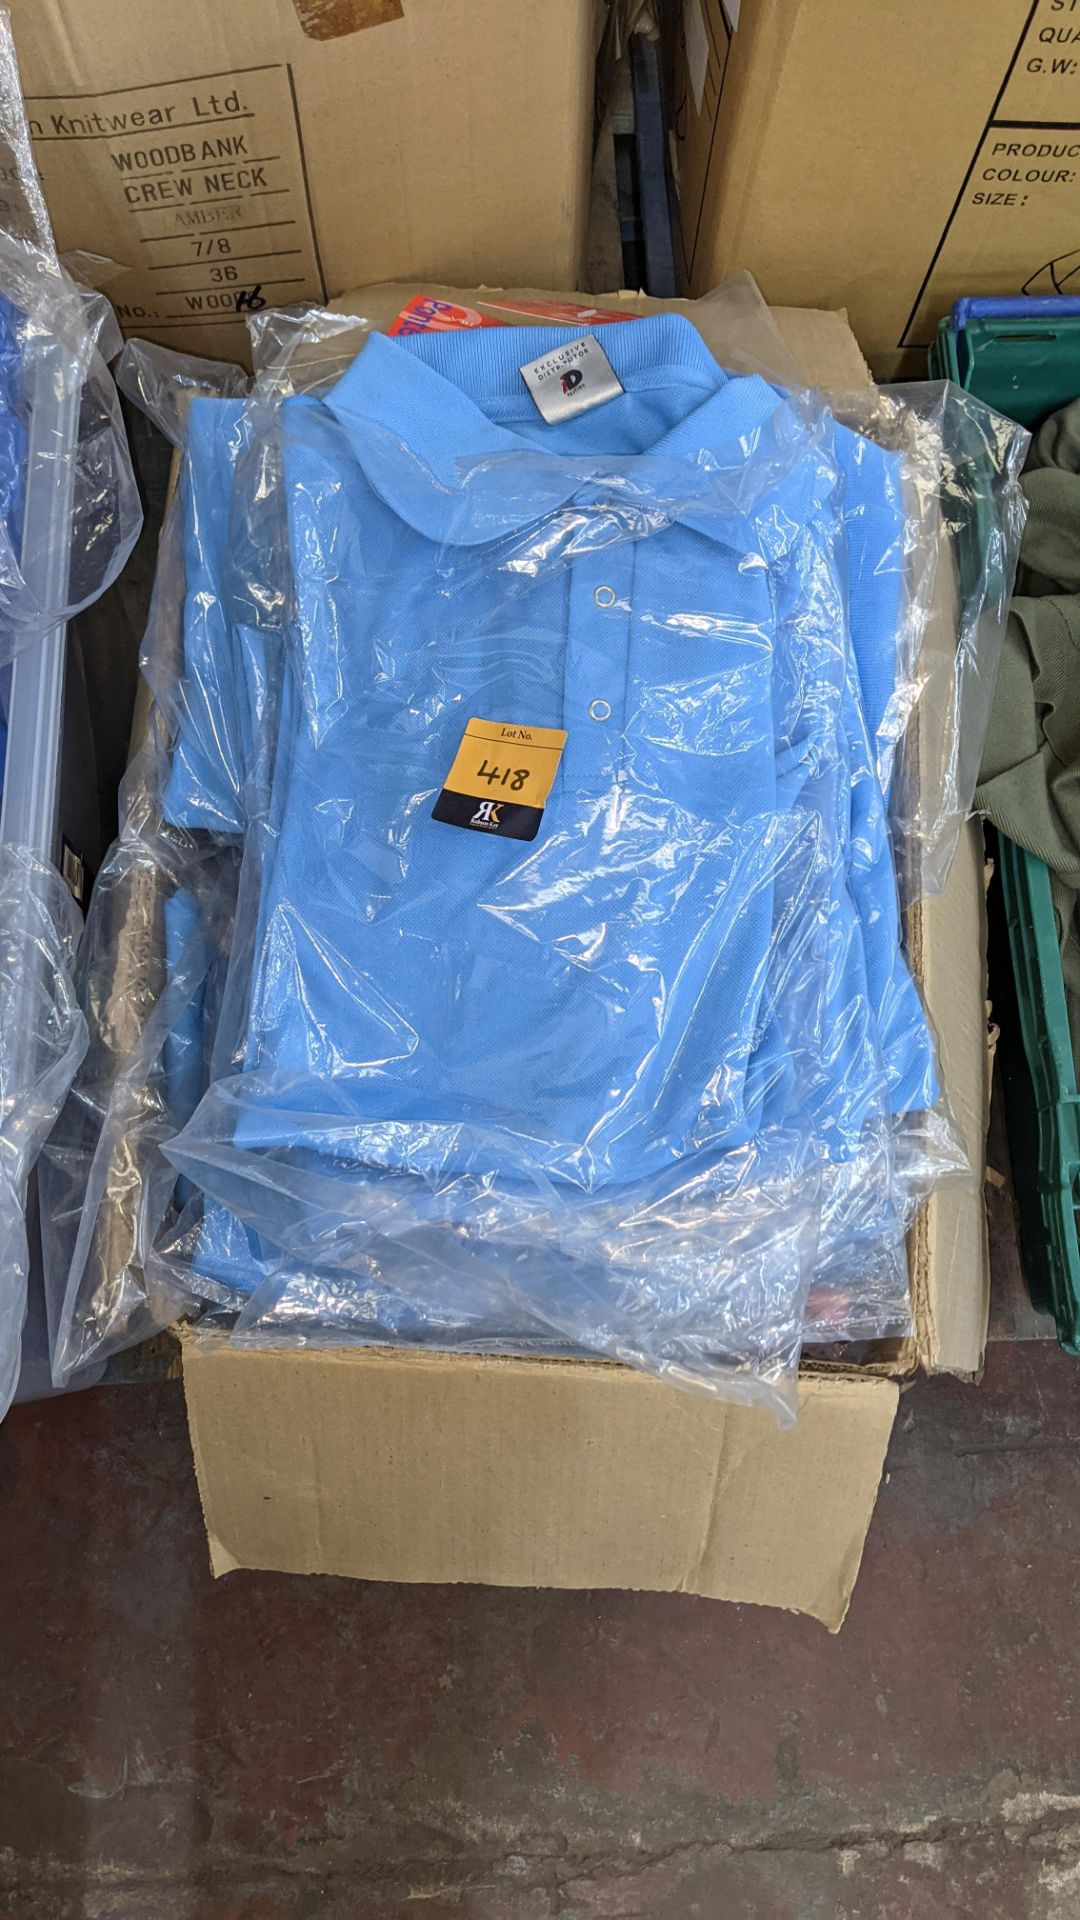 Approx 25 off pale blue polo shirts - Image 3 of 5